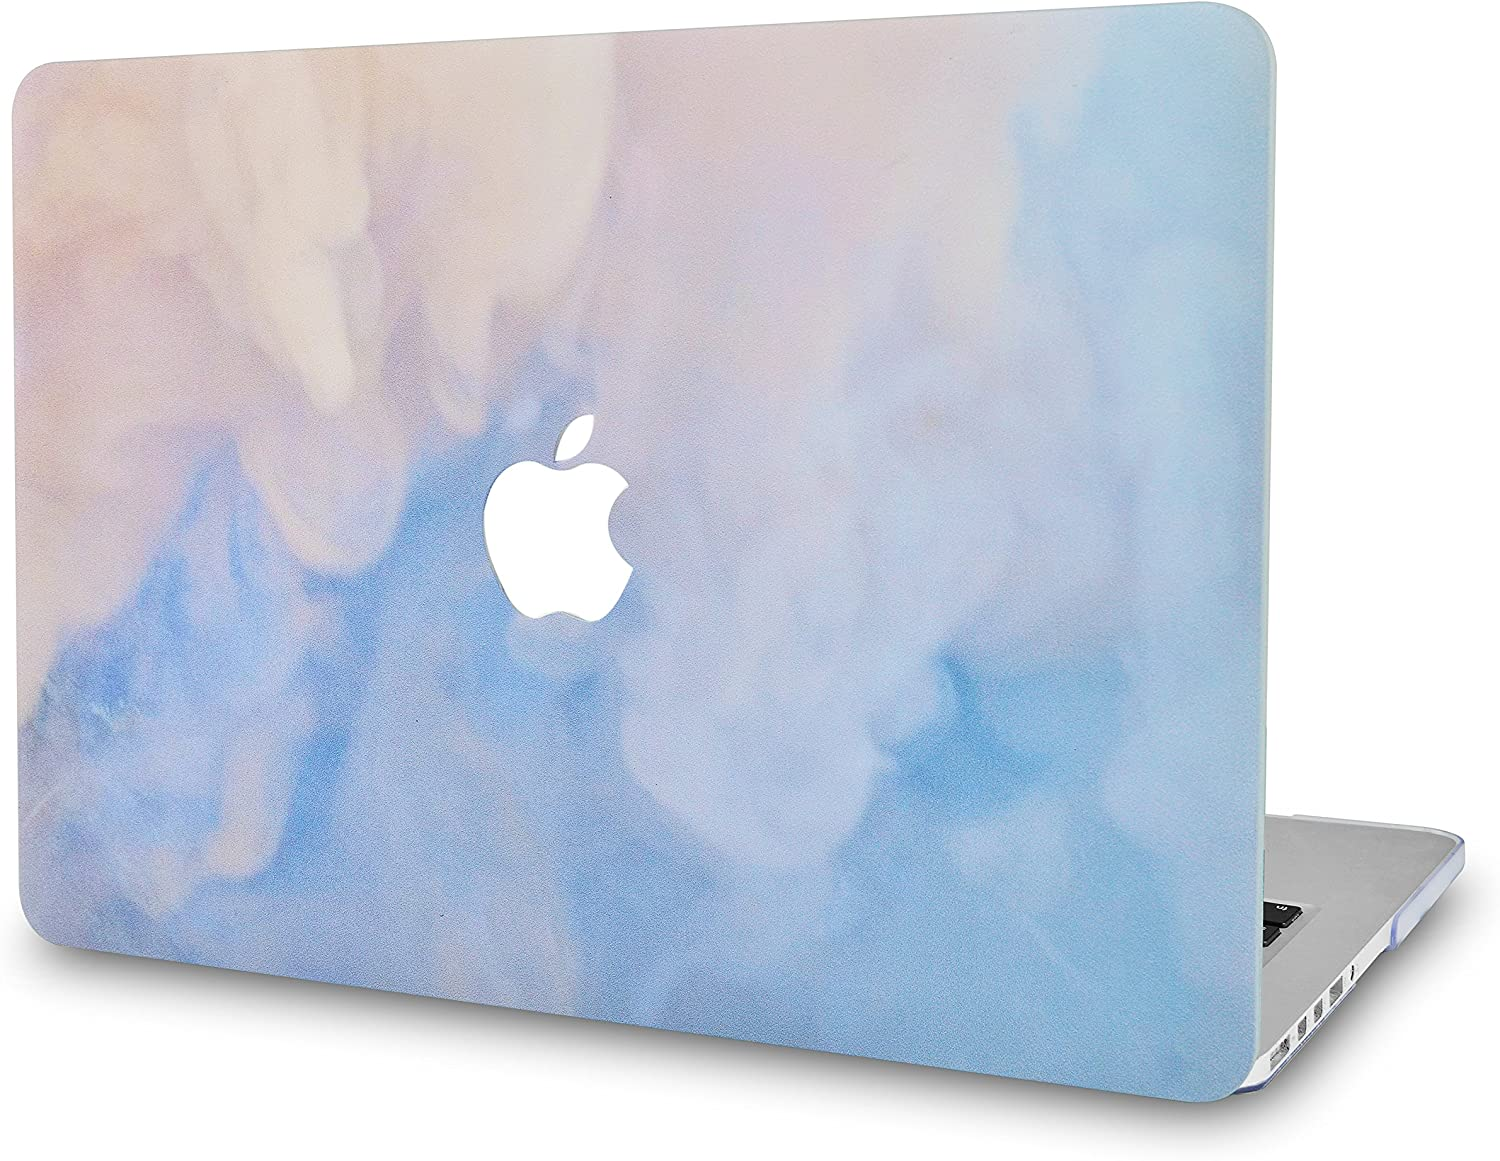 LuvCaseLaptopCaseforMacBookAir 13 Inch A1466 / A1369 (No Touch ID)RubberizedPlasticHardShellCover (Blue Mist)